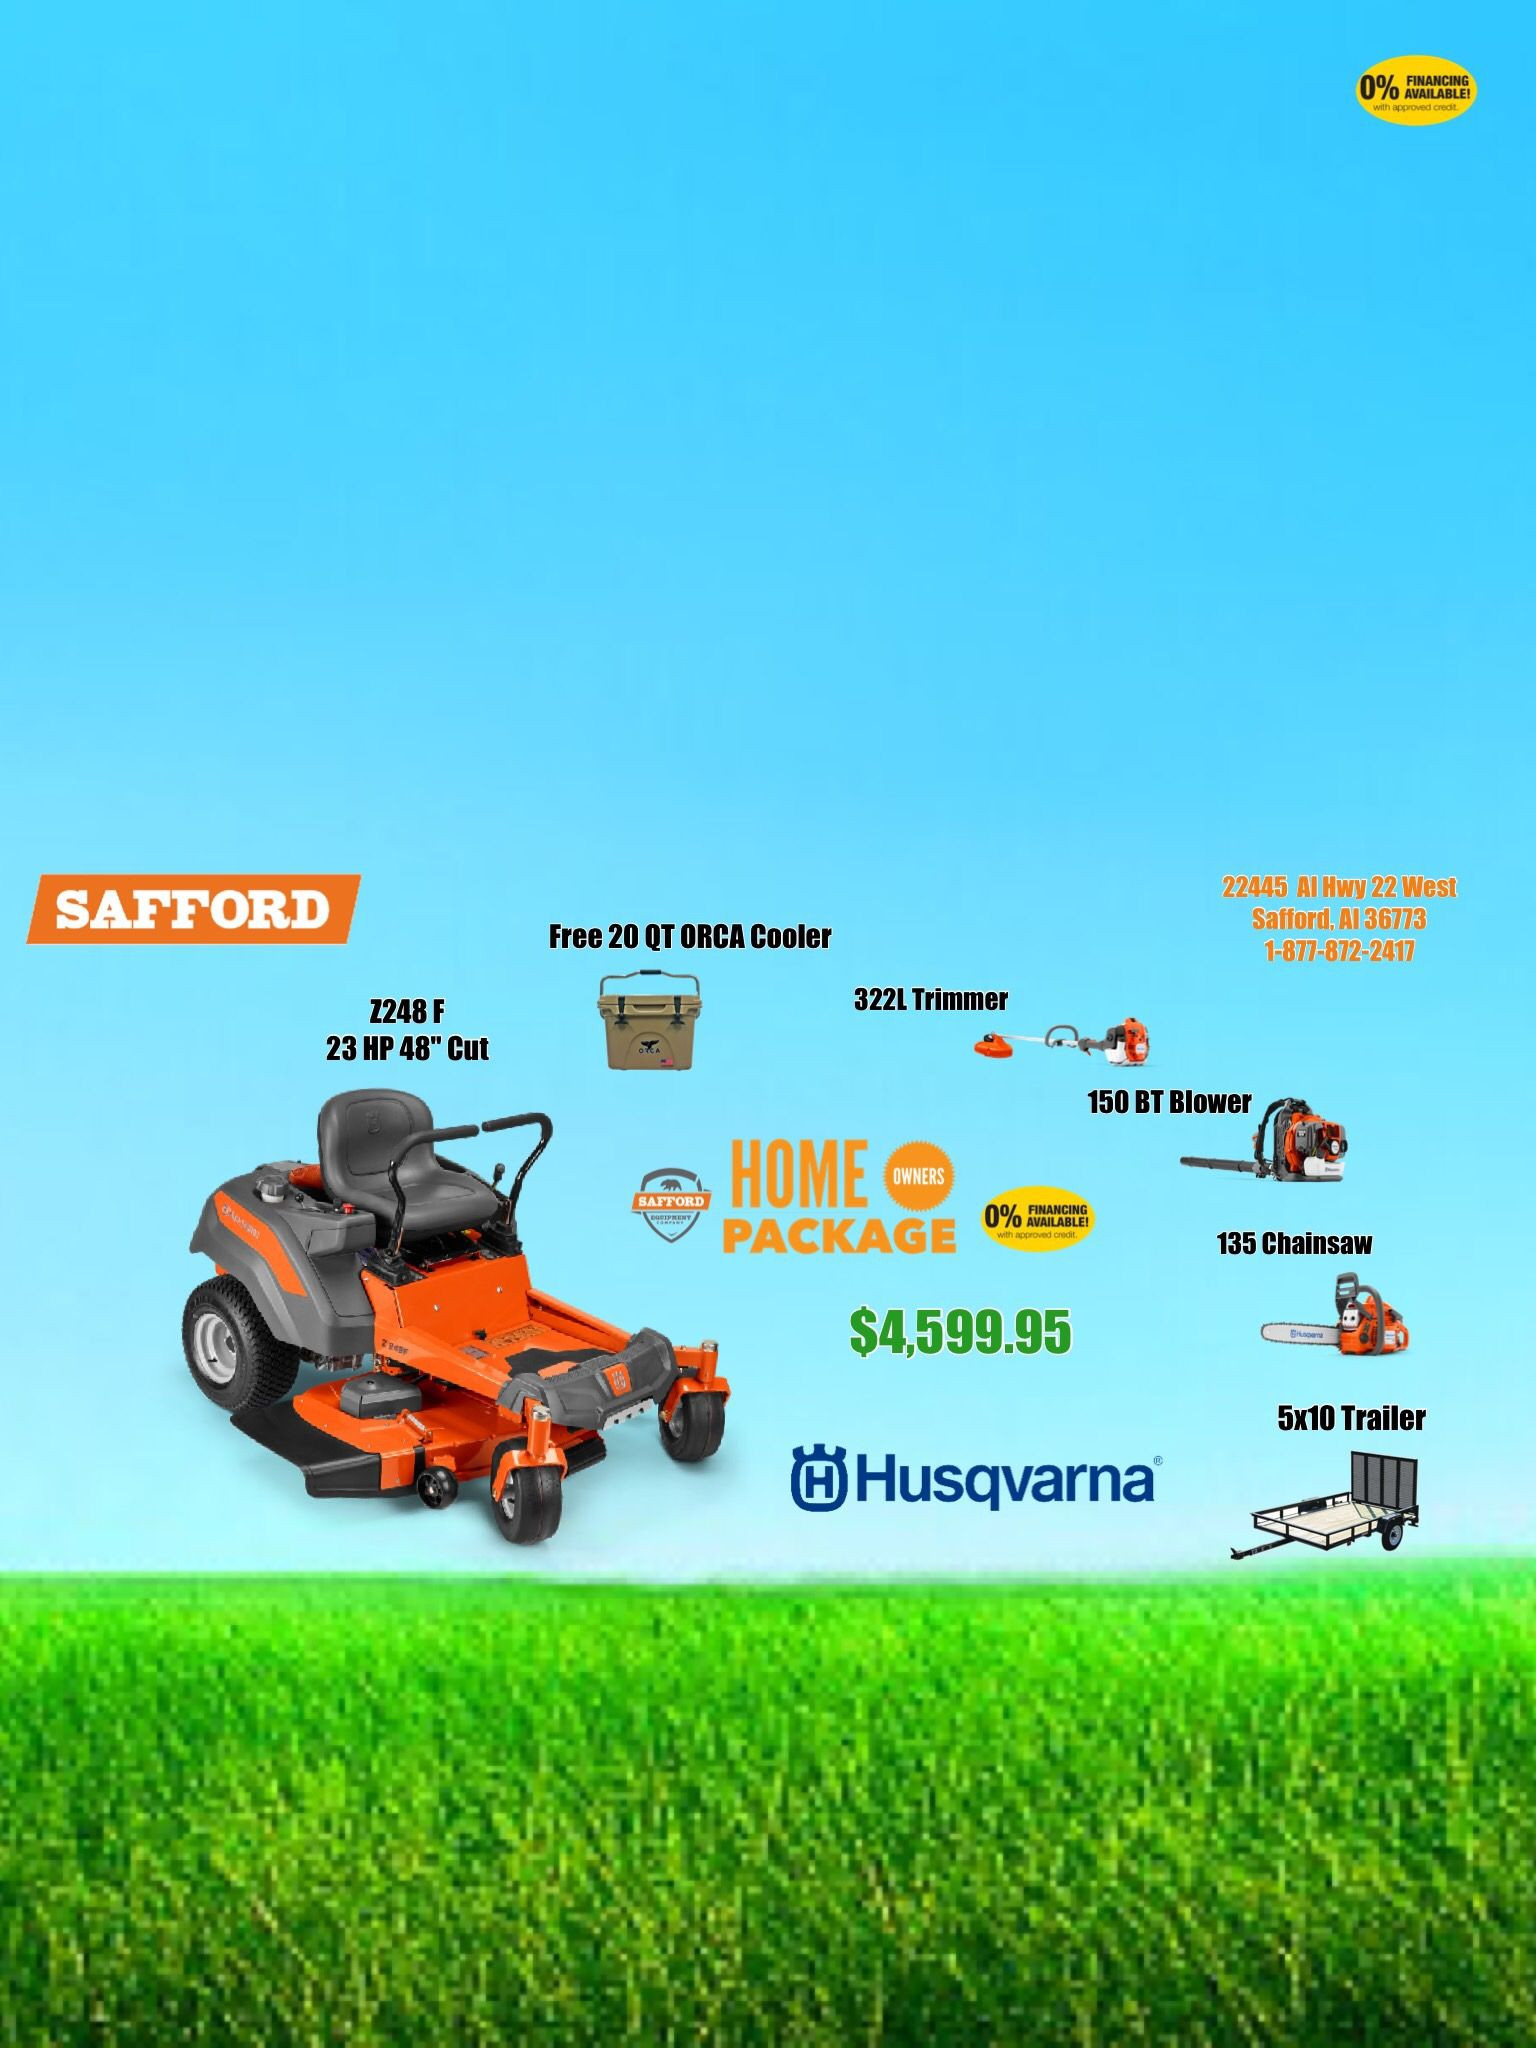 1 877 872 2417 Safford Equipment Alabama Husqvarna Dealer husqvarna